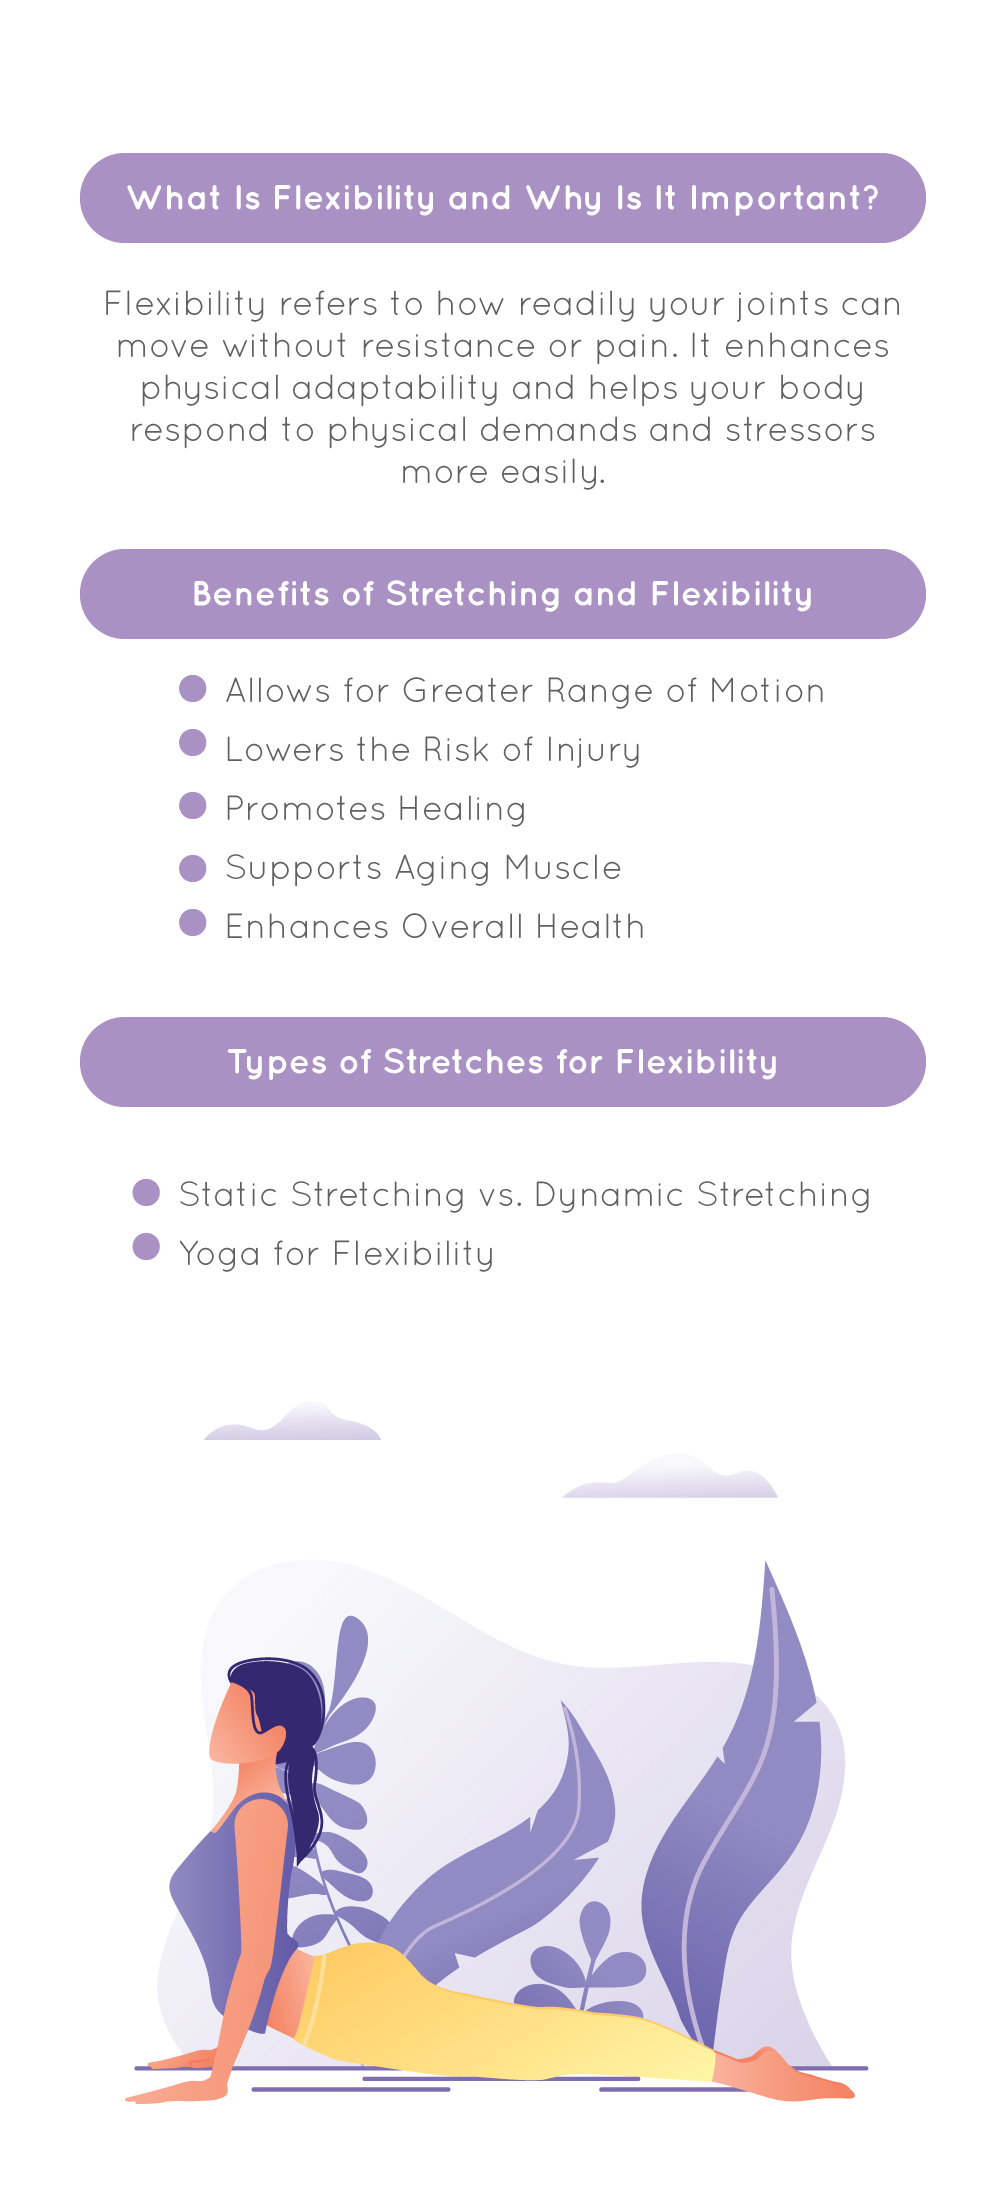 What Is Flexibility and Why Is It Important?